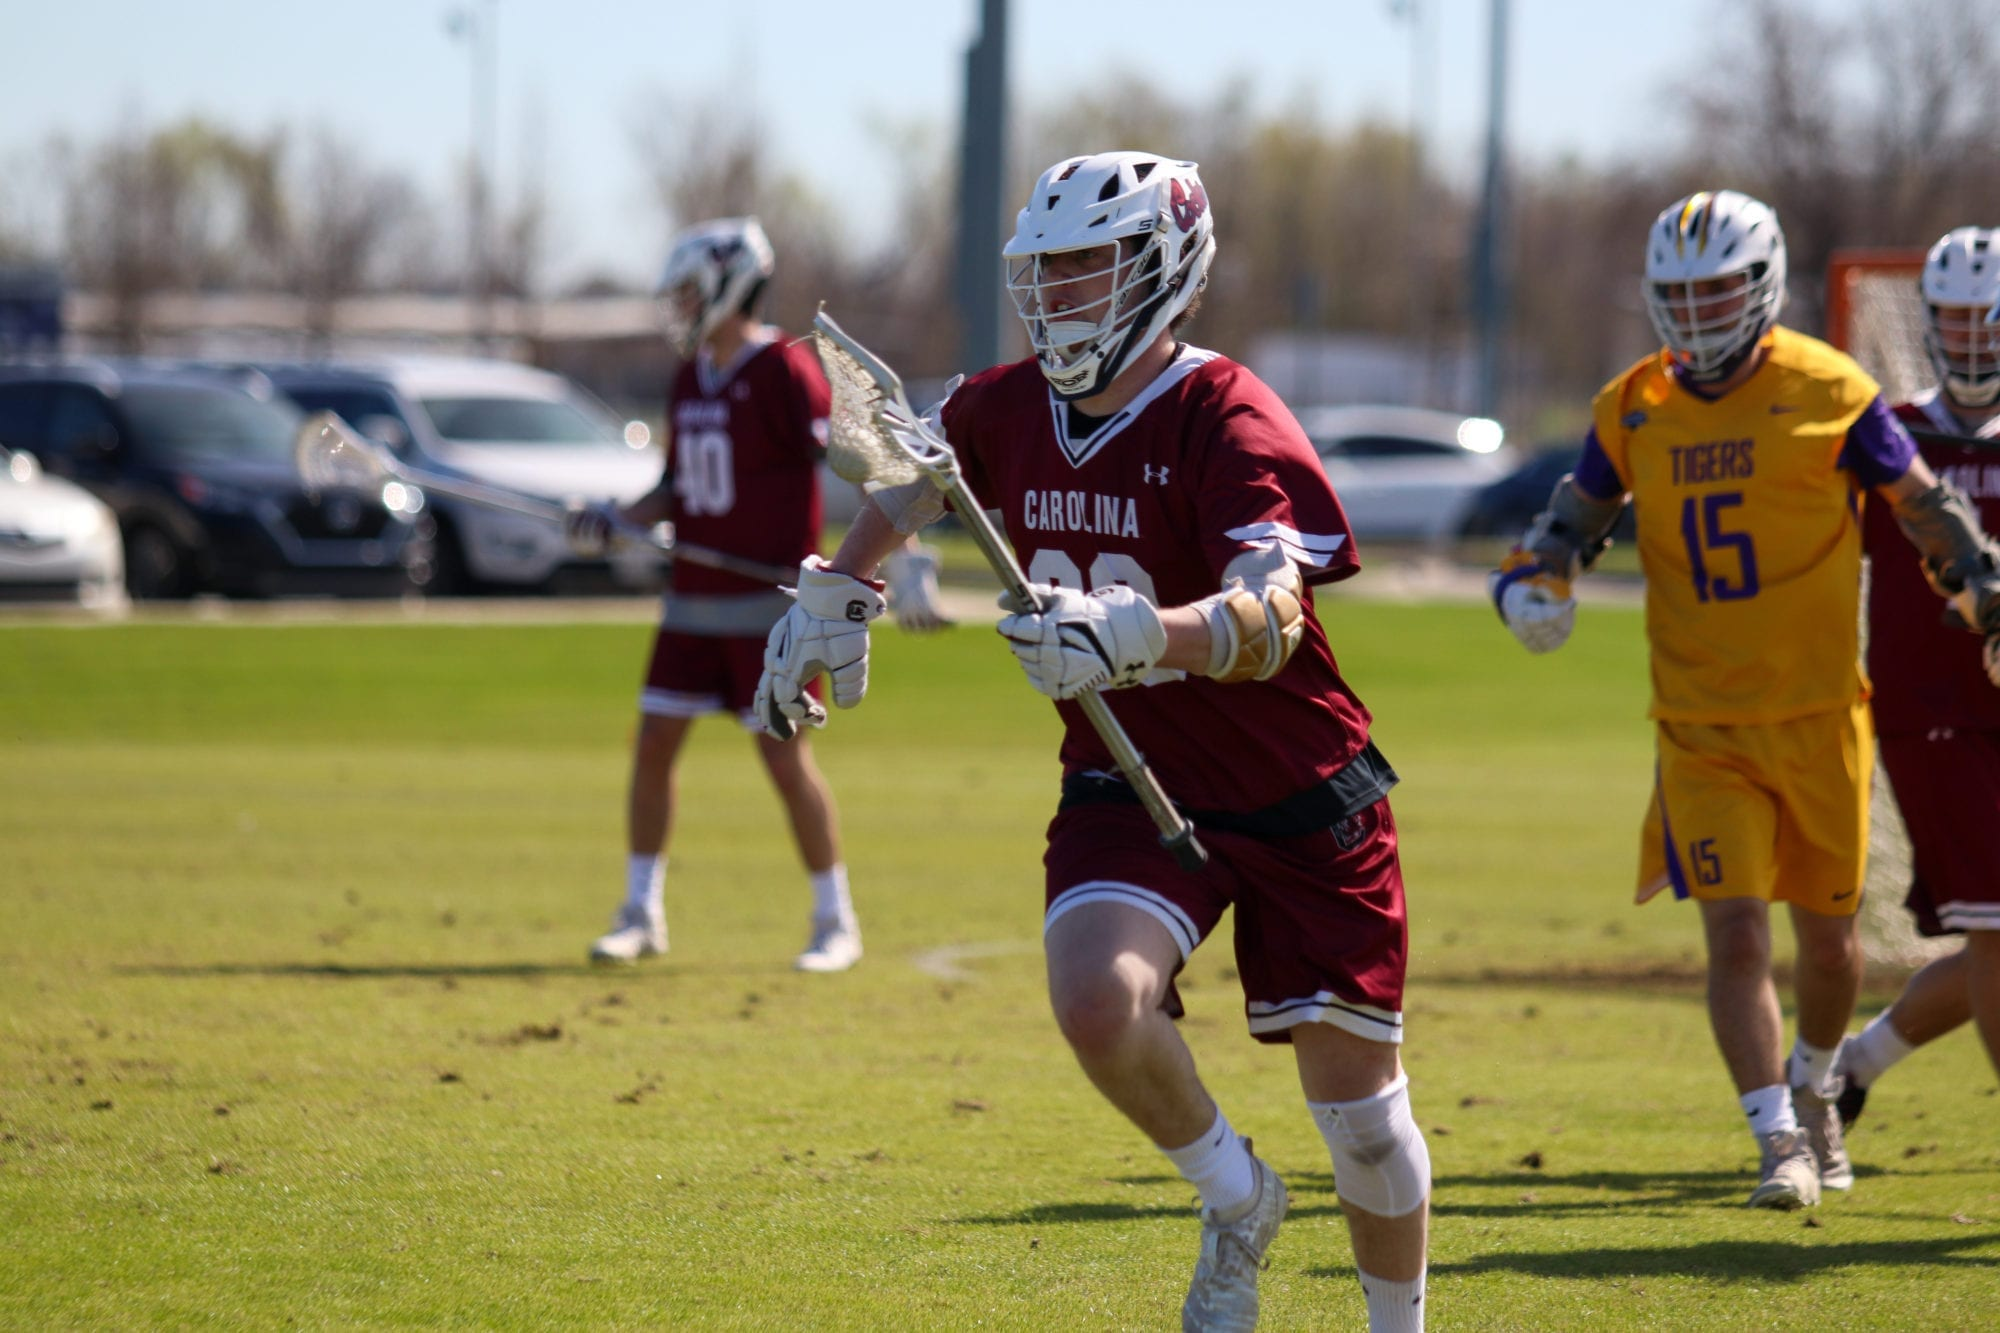 mcla lacrosse south carolina gameocks